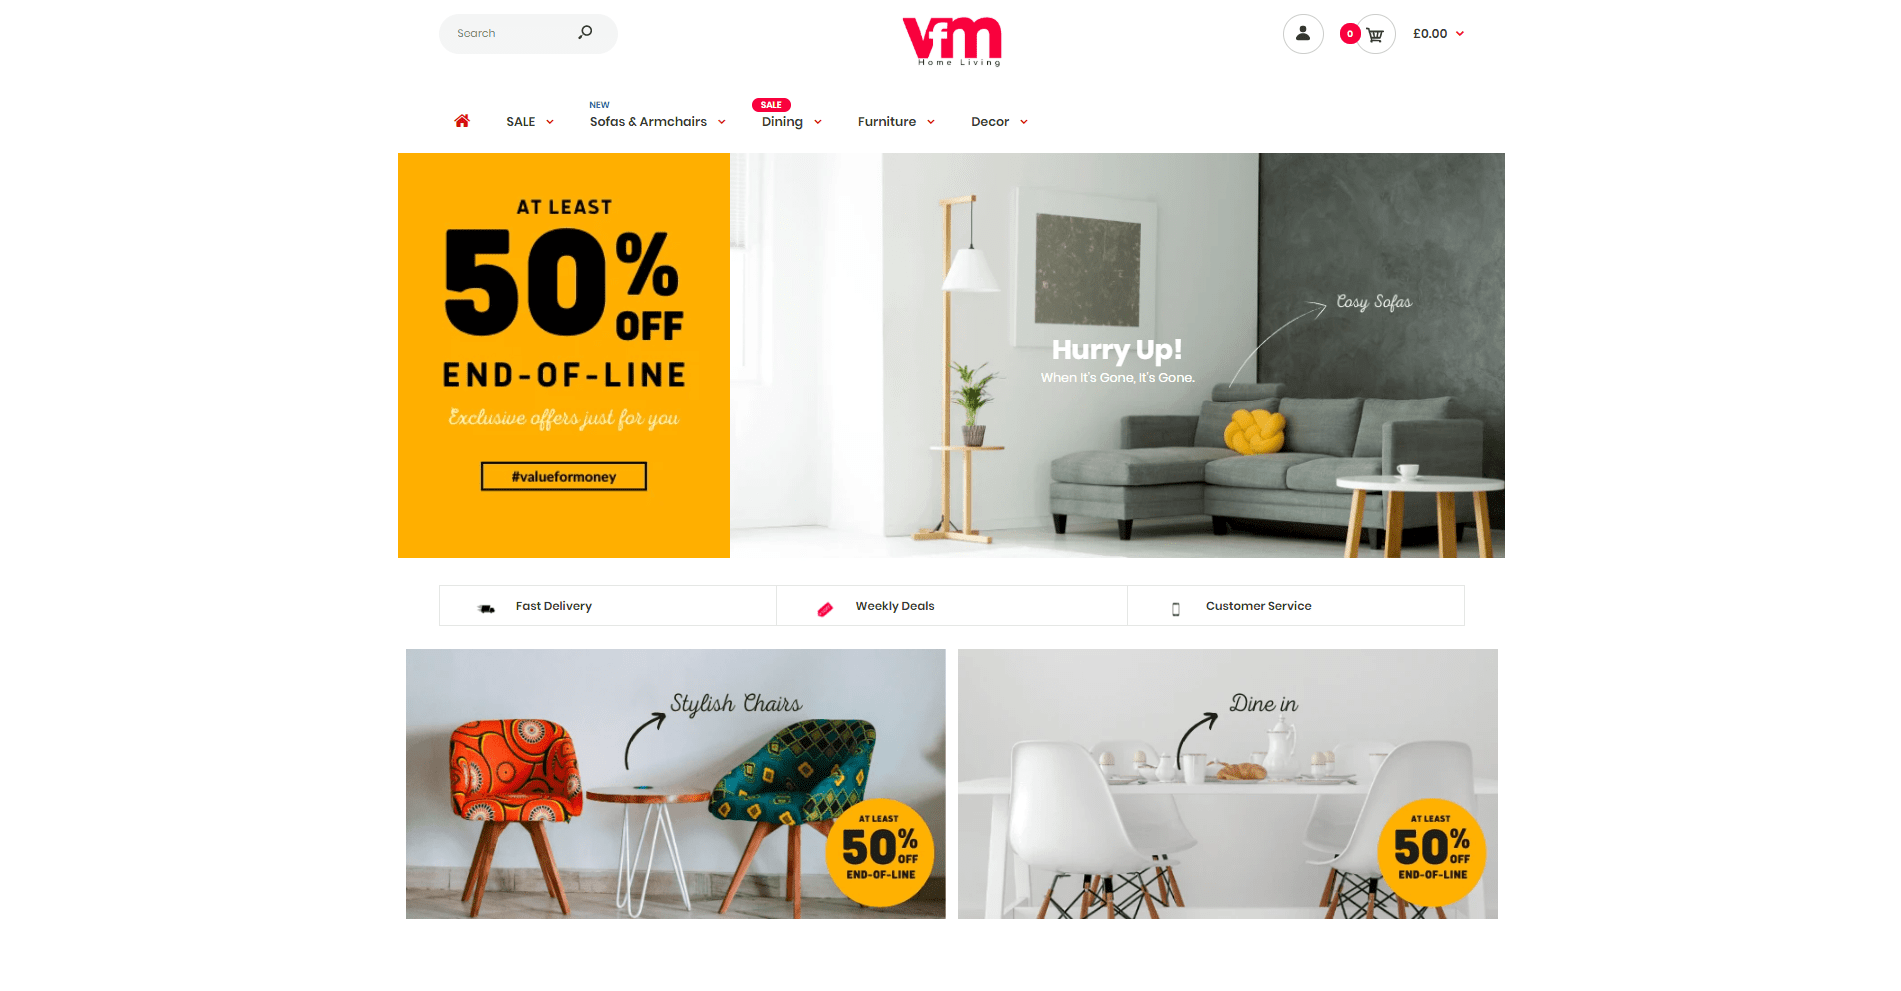 VFM Home Living Shopify website